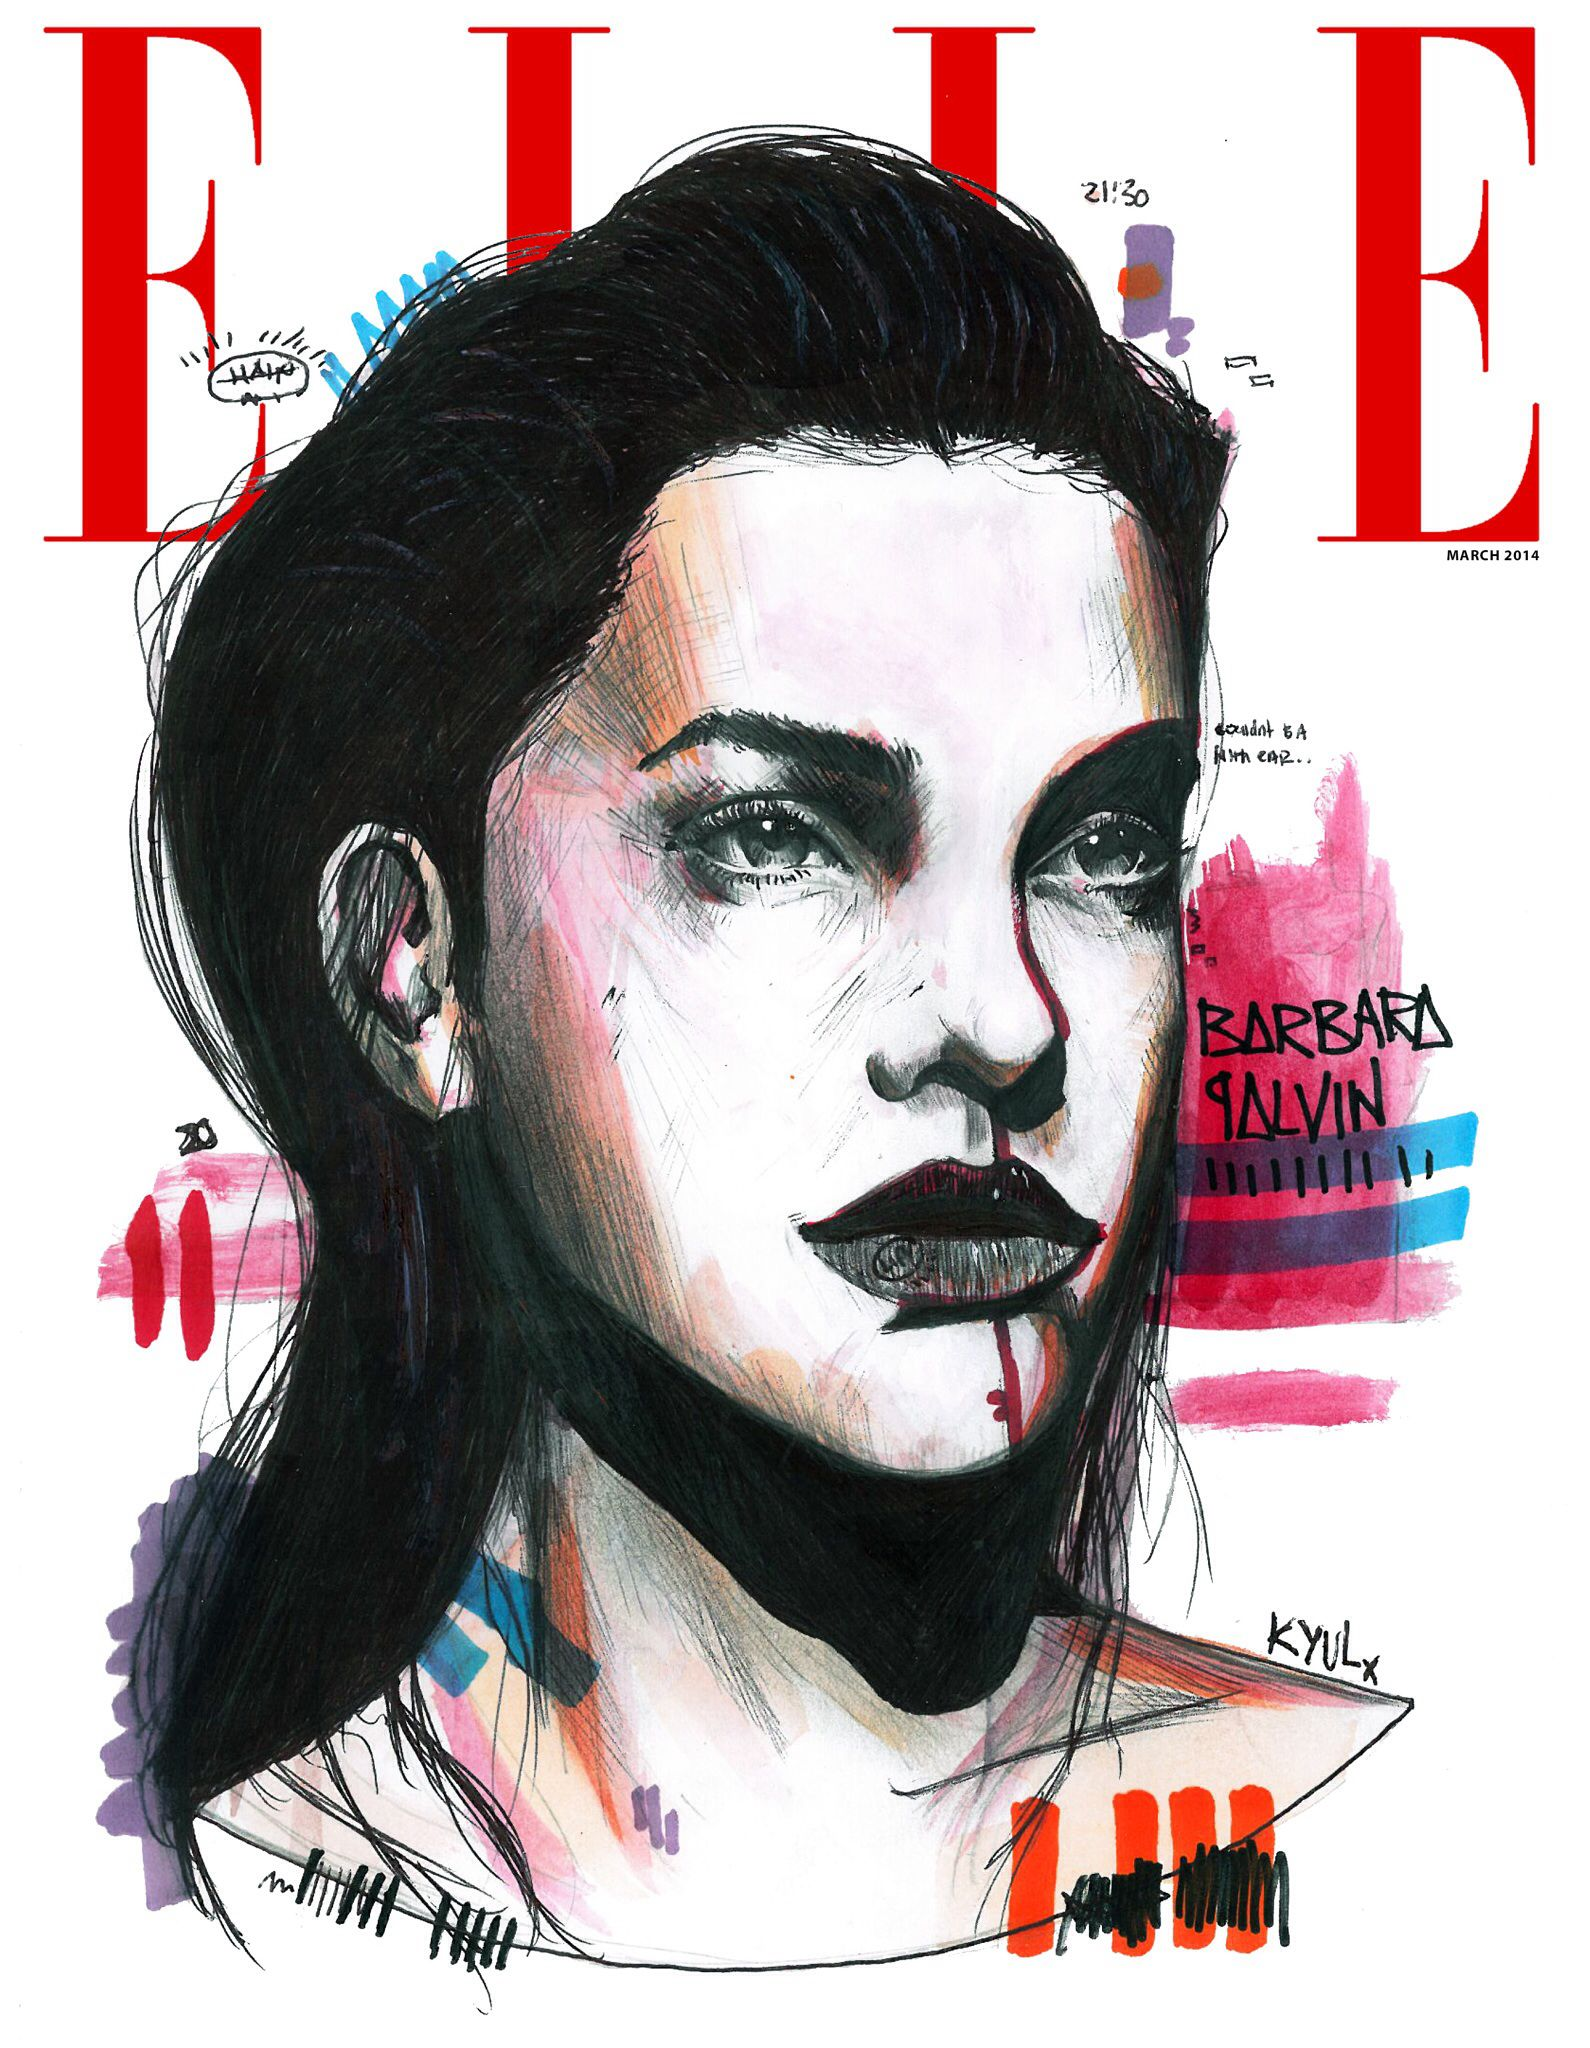 Barbara Palvin ELLE front cover illustration by KYULx ...